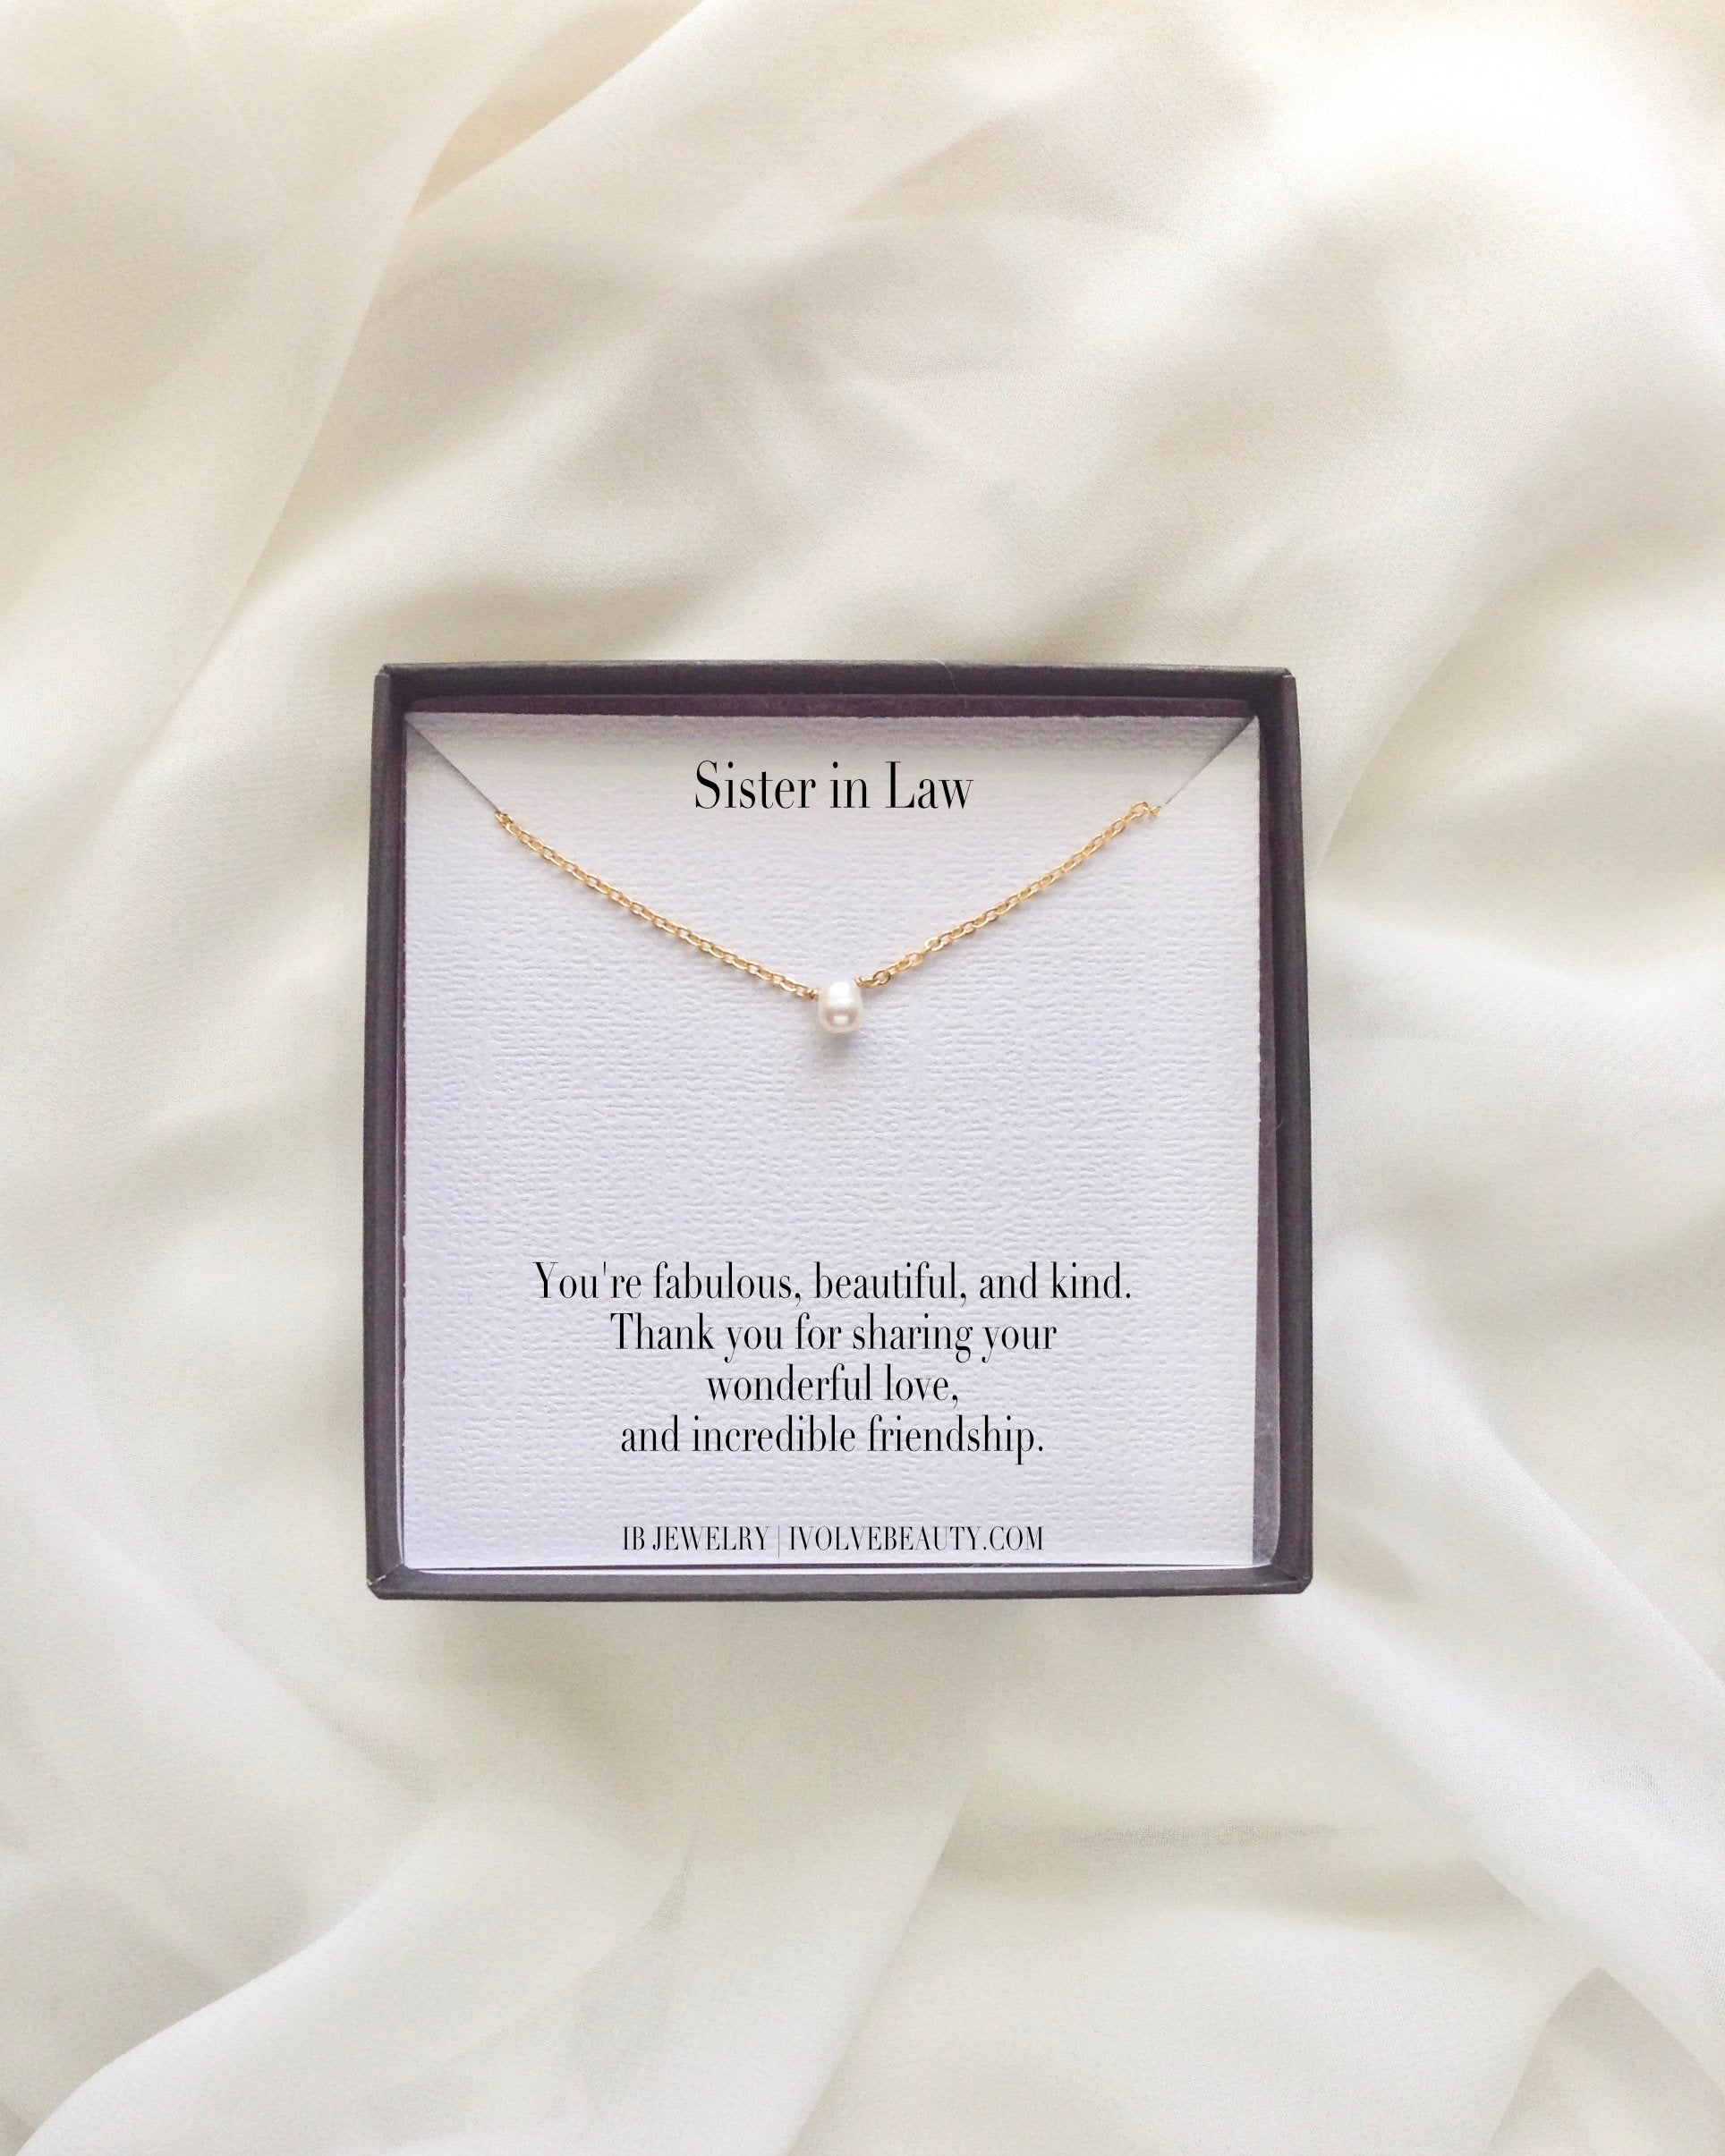 Sister In Law Meaningful Necklace Gift | IB Jewelry